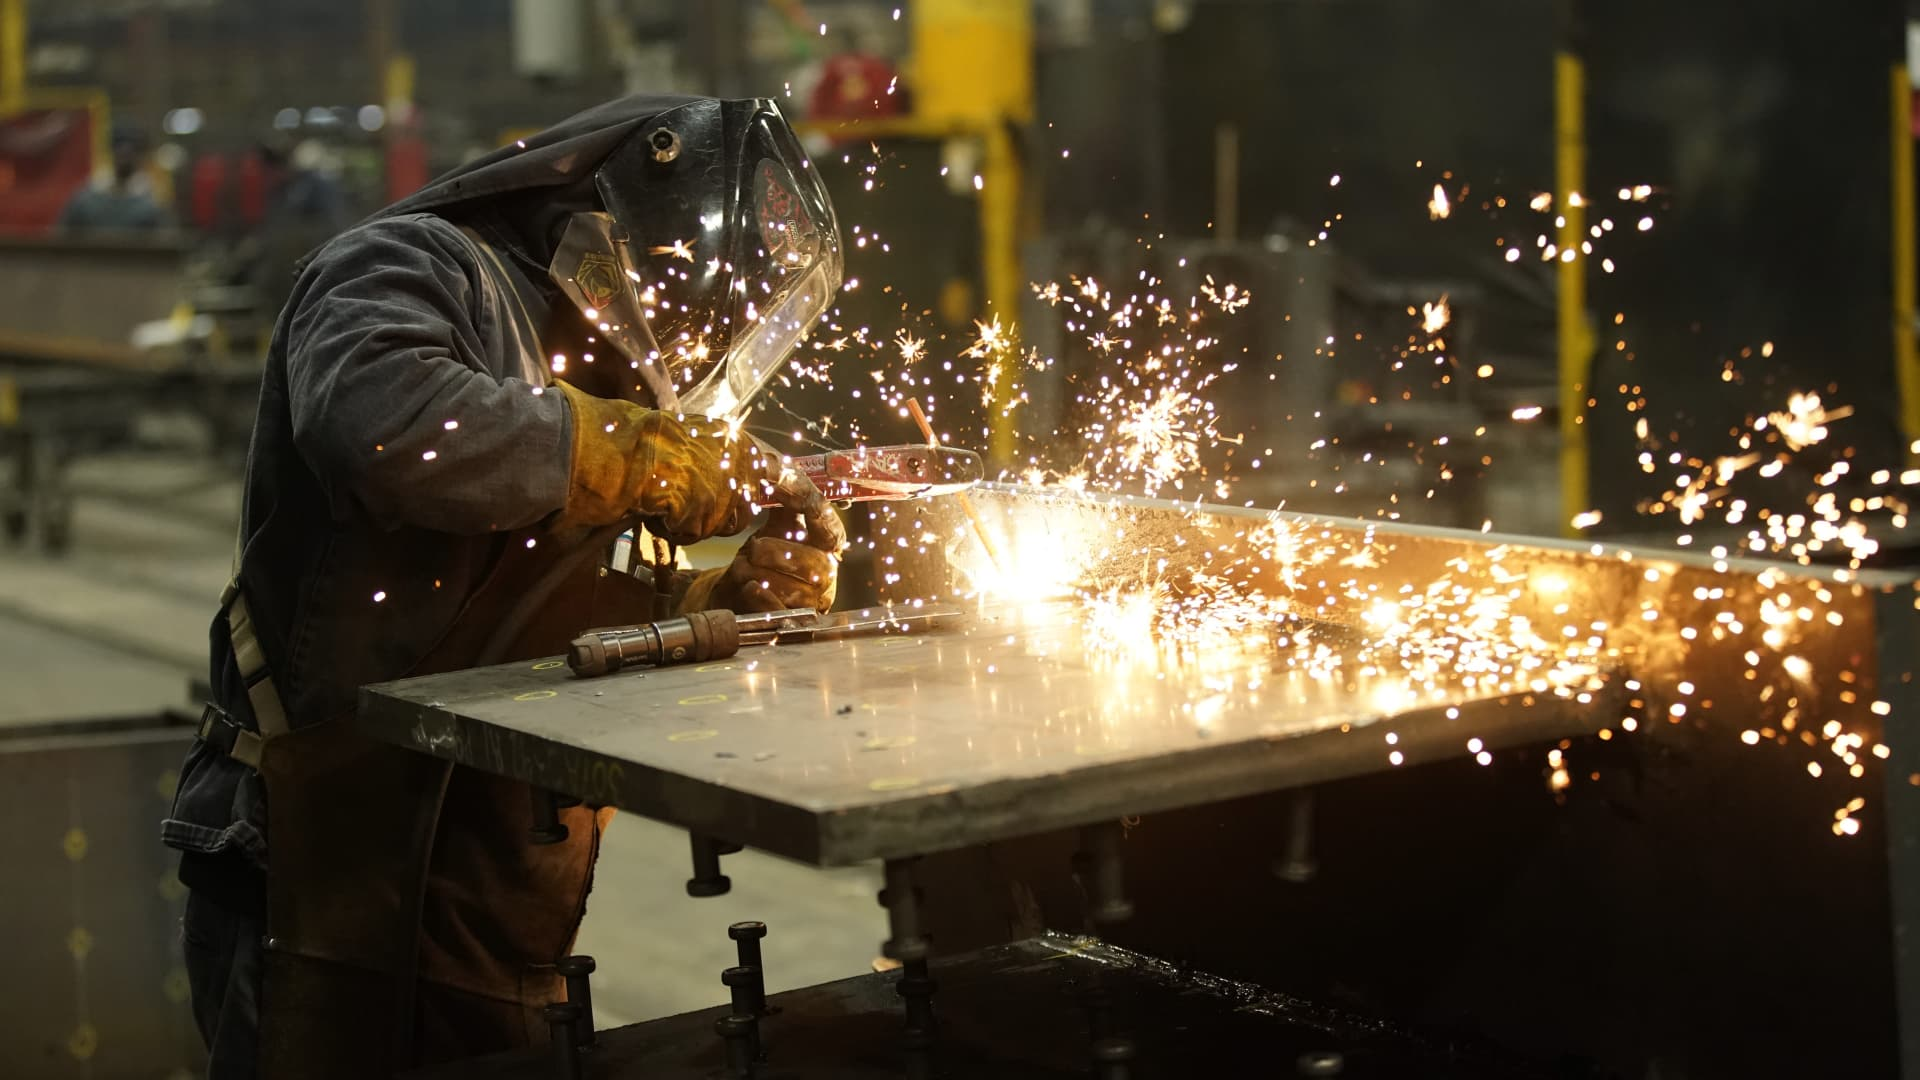 A worker welds a structural steel beam during production at the SME Steel Contractors facility in West Jordan, Utah, on Feb. 1, 2021.